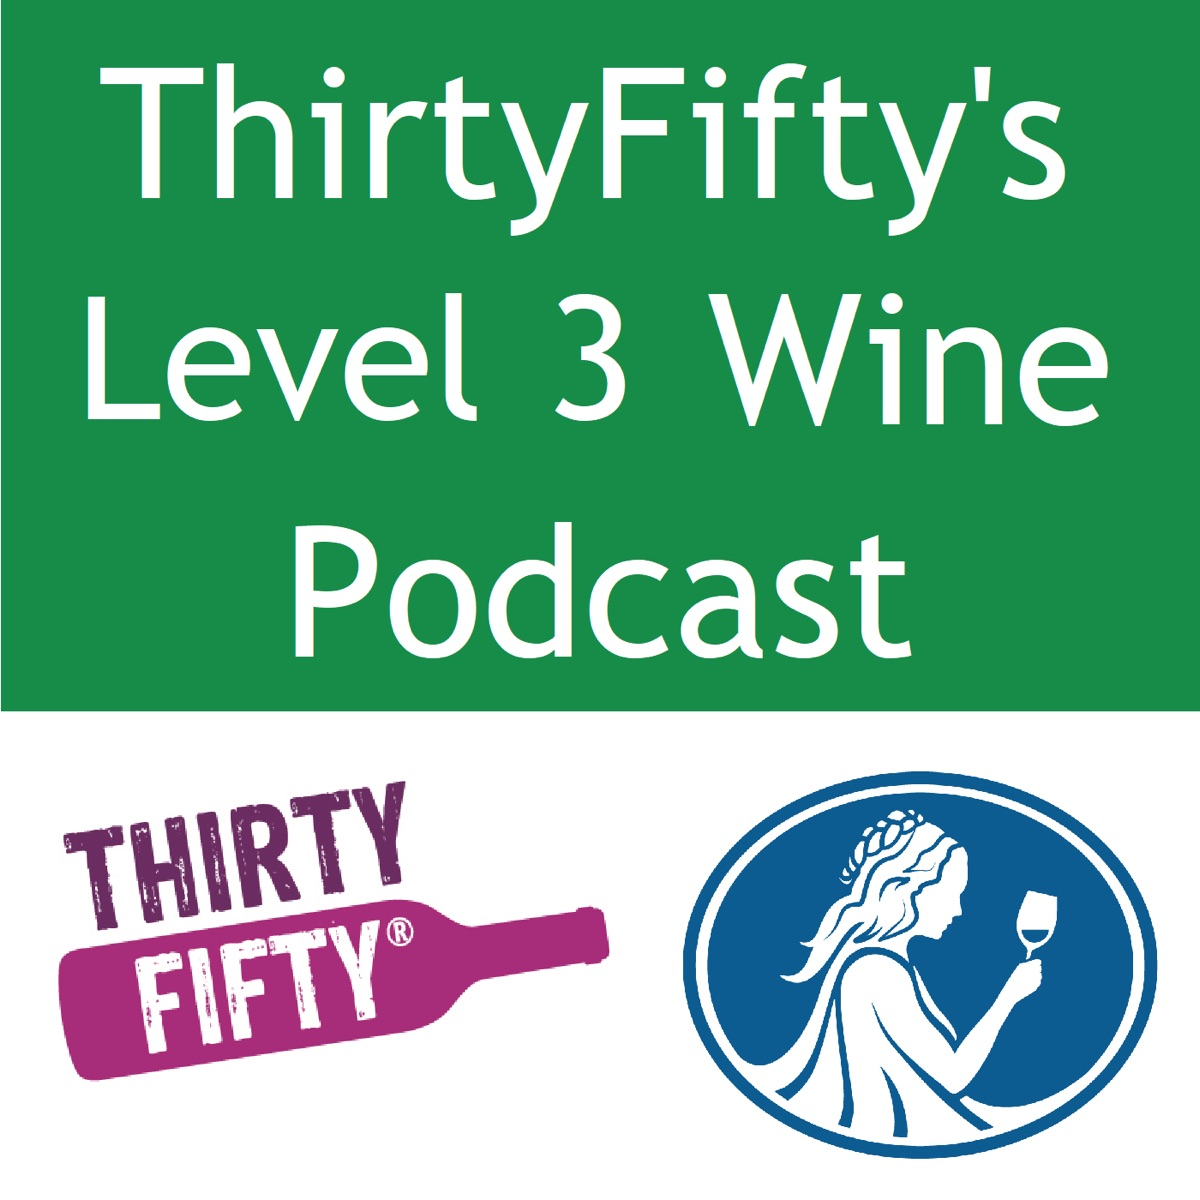 ThirtyFifty's Level 3 Wine Podcast